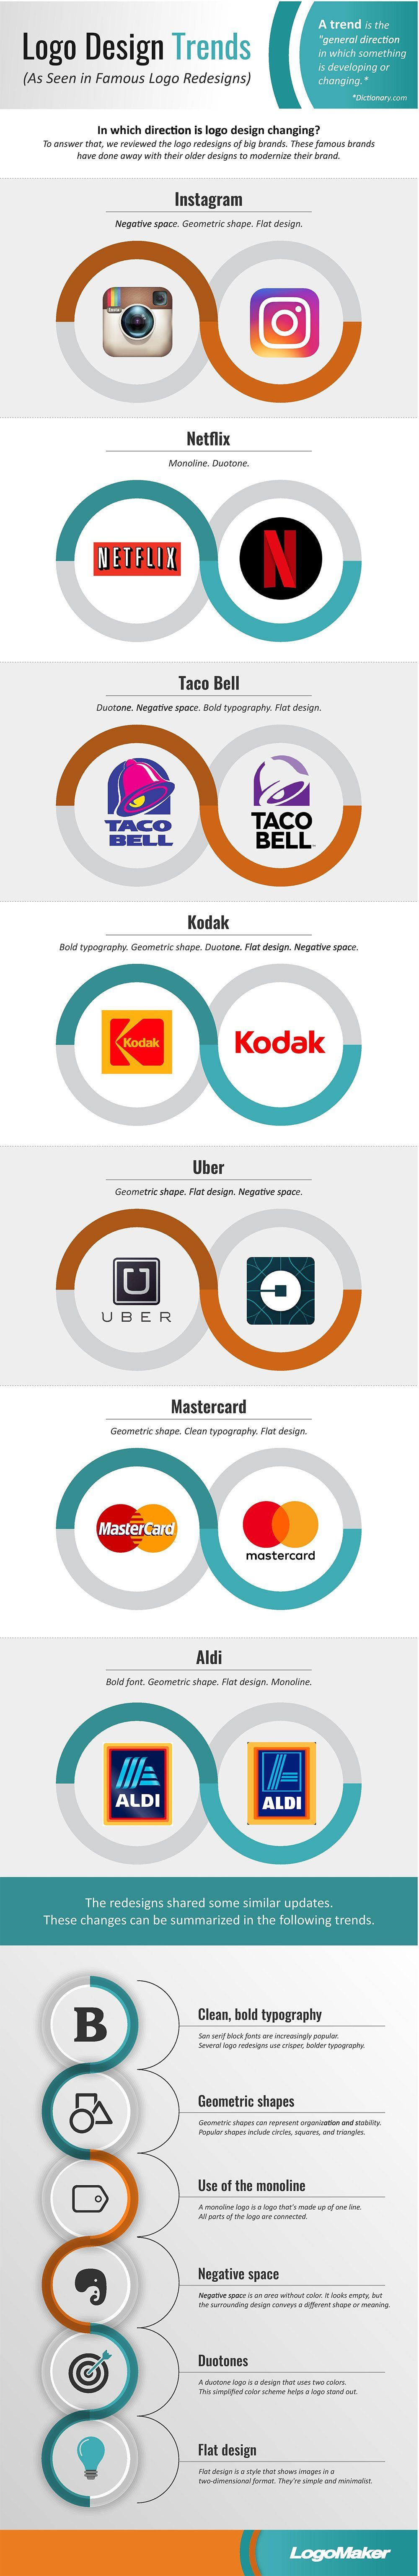 6 modern logo design trends as seen in famous logo redesigns